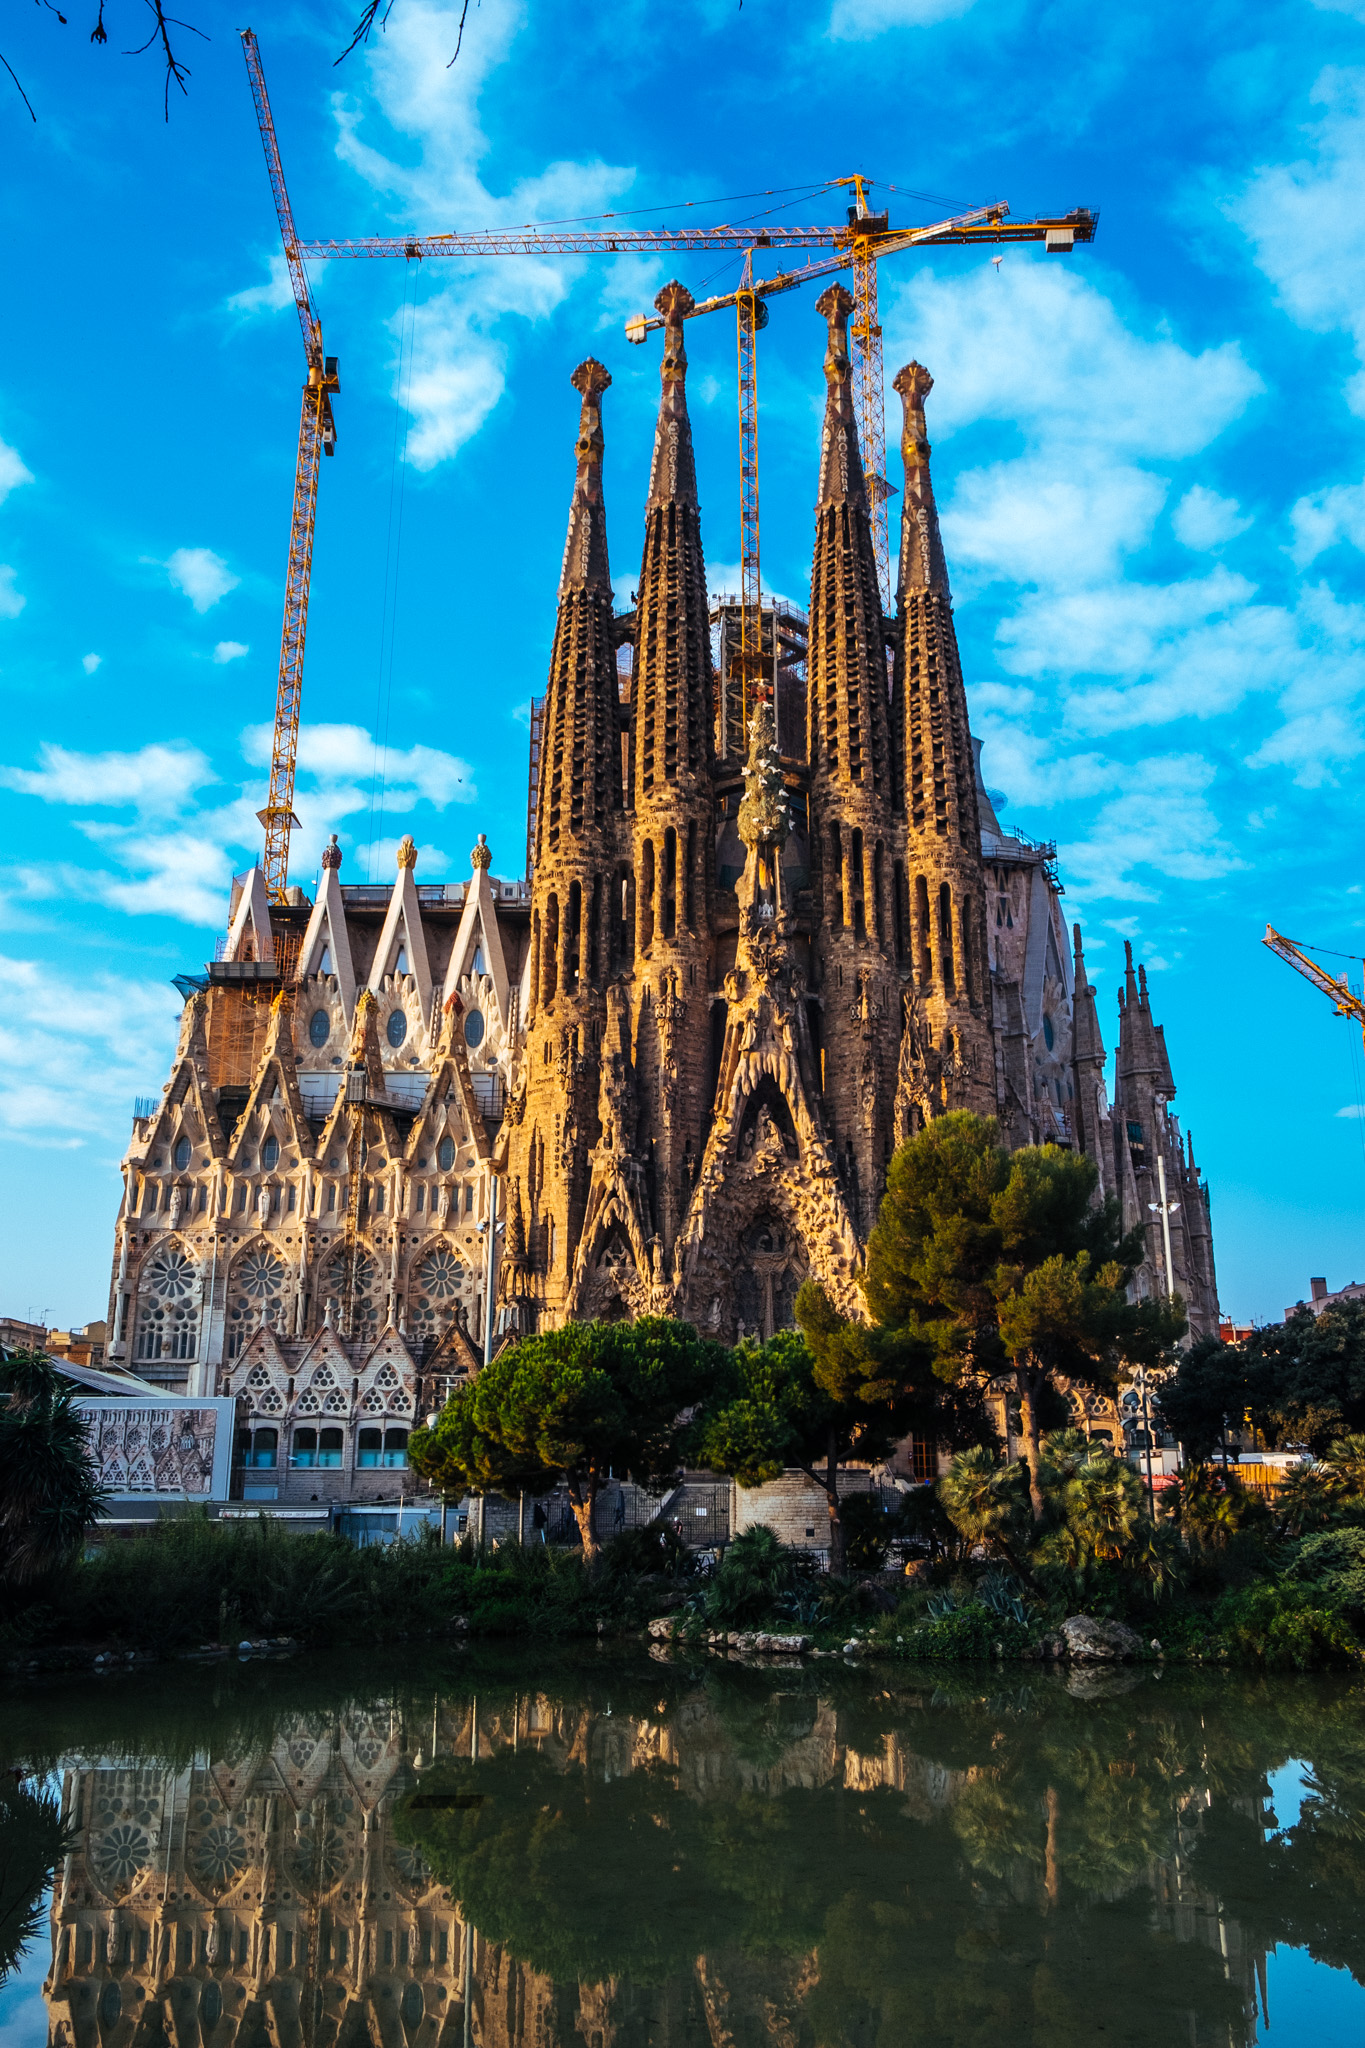 This is the famous Sagrada Familia - an unfinished roman catholic church designed by Antoni Gaudí. Started in 1882, it is still in the process of being completed.